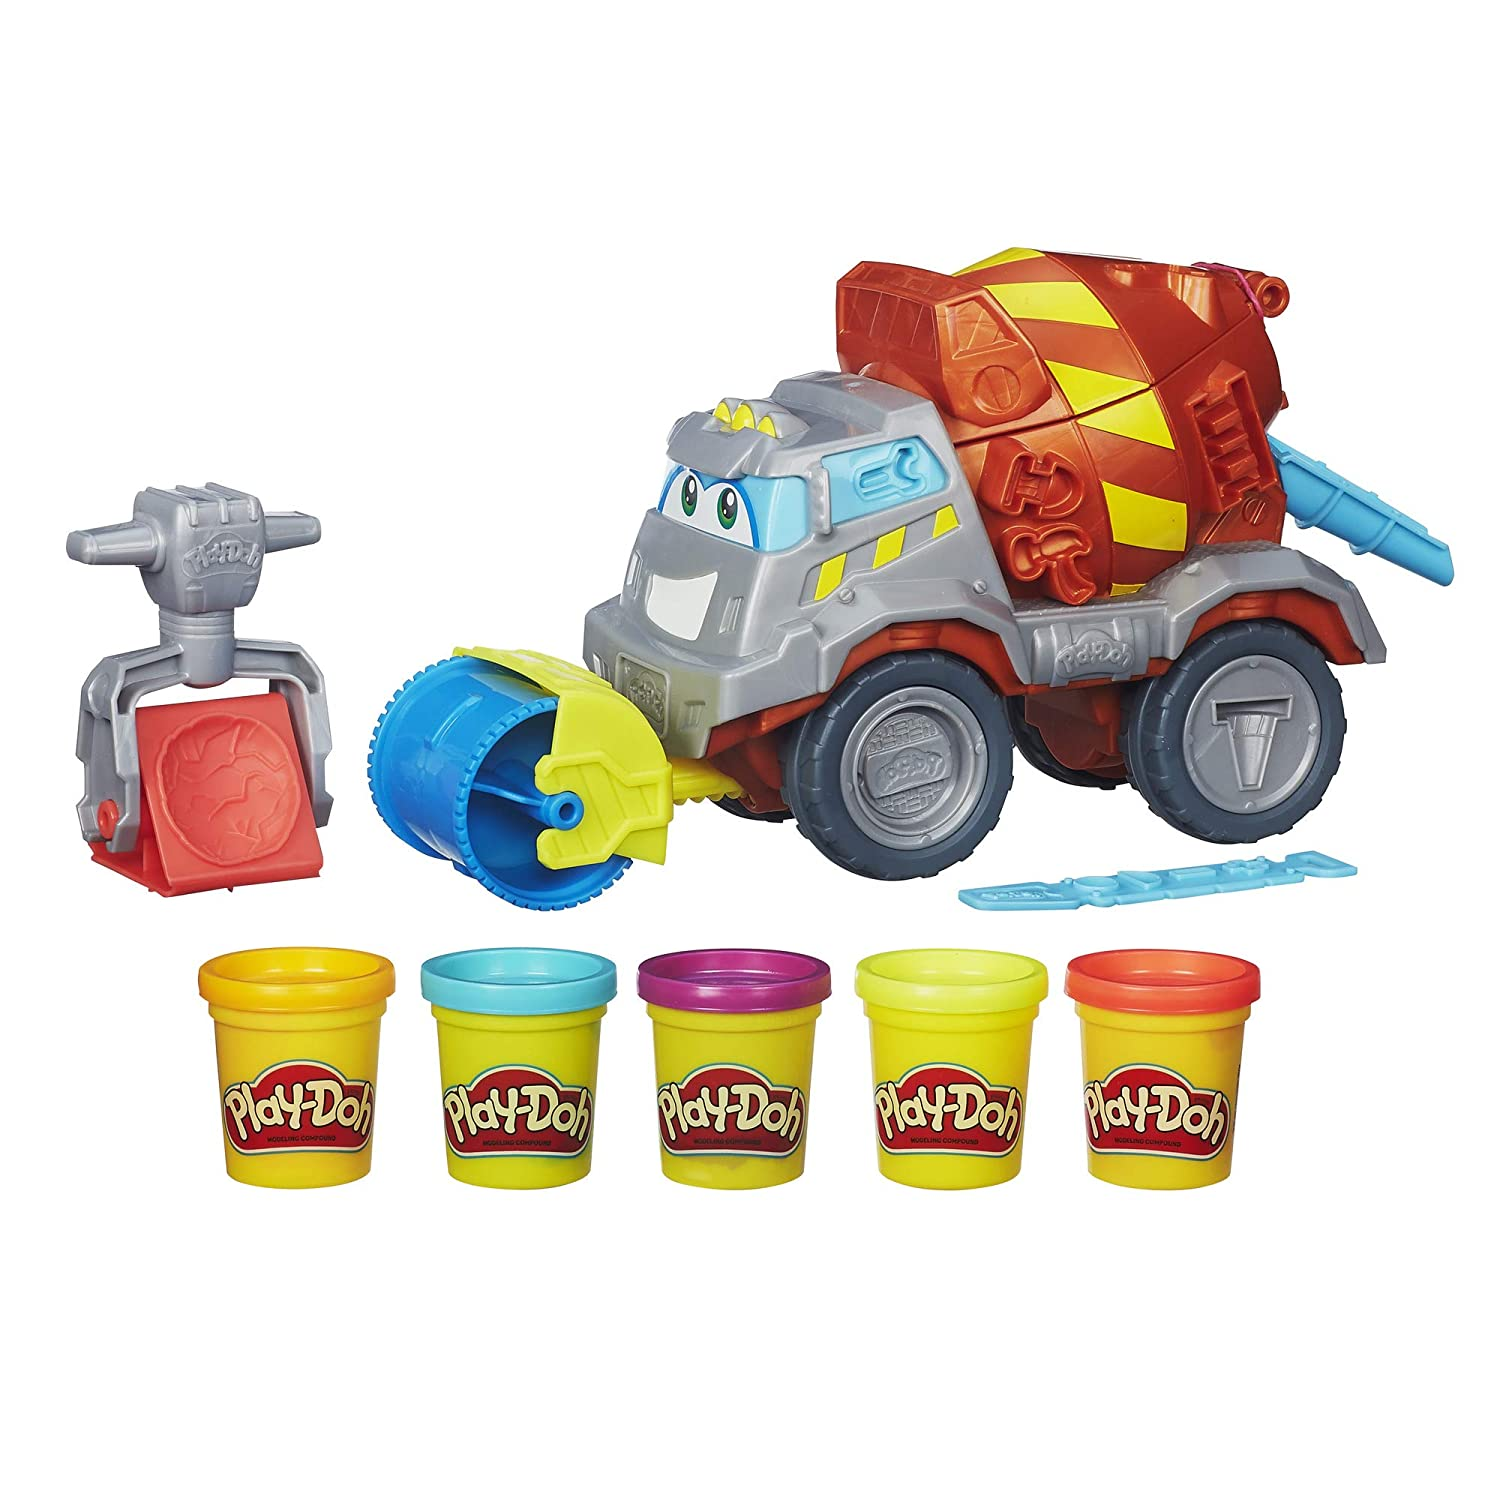 Top 8 Best Play Dough Sets for Boys Reviews in 2020 6